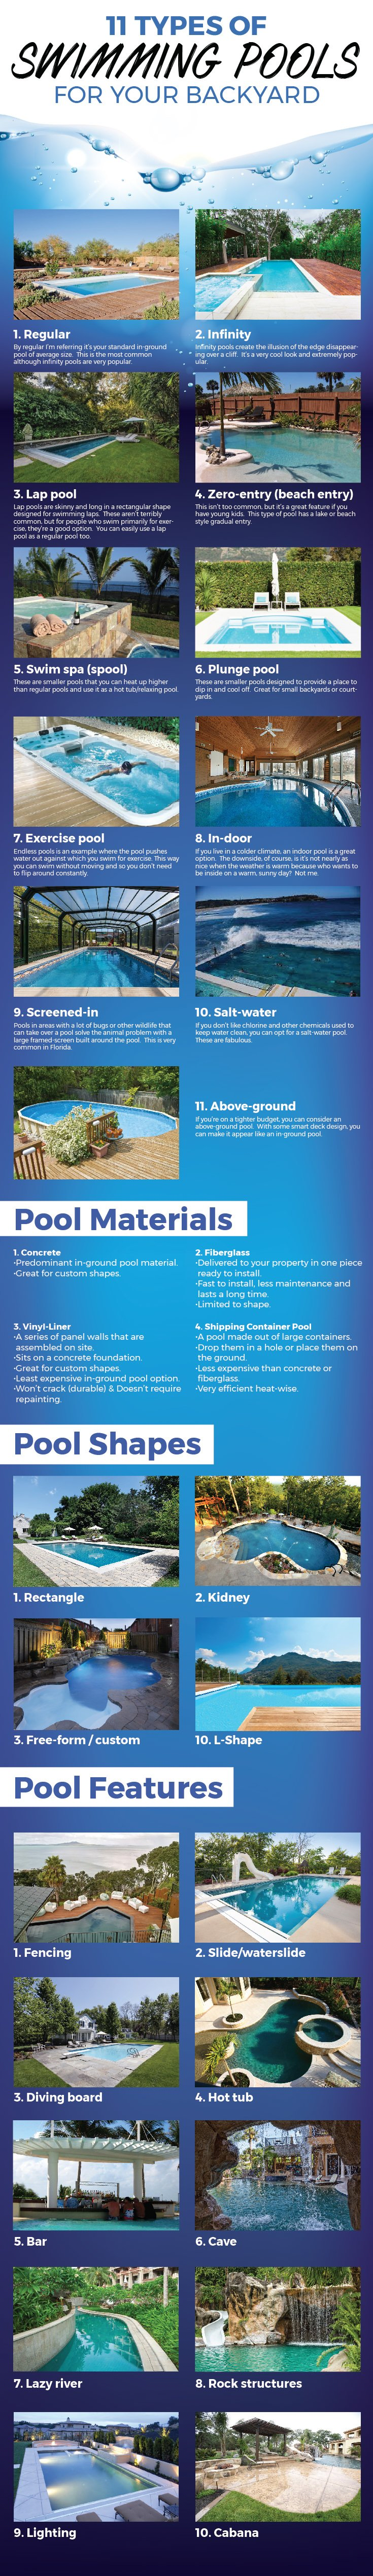 11 types of swimming pools